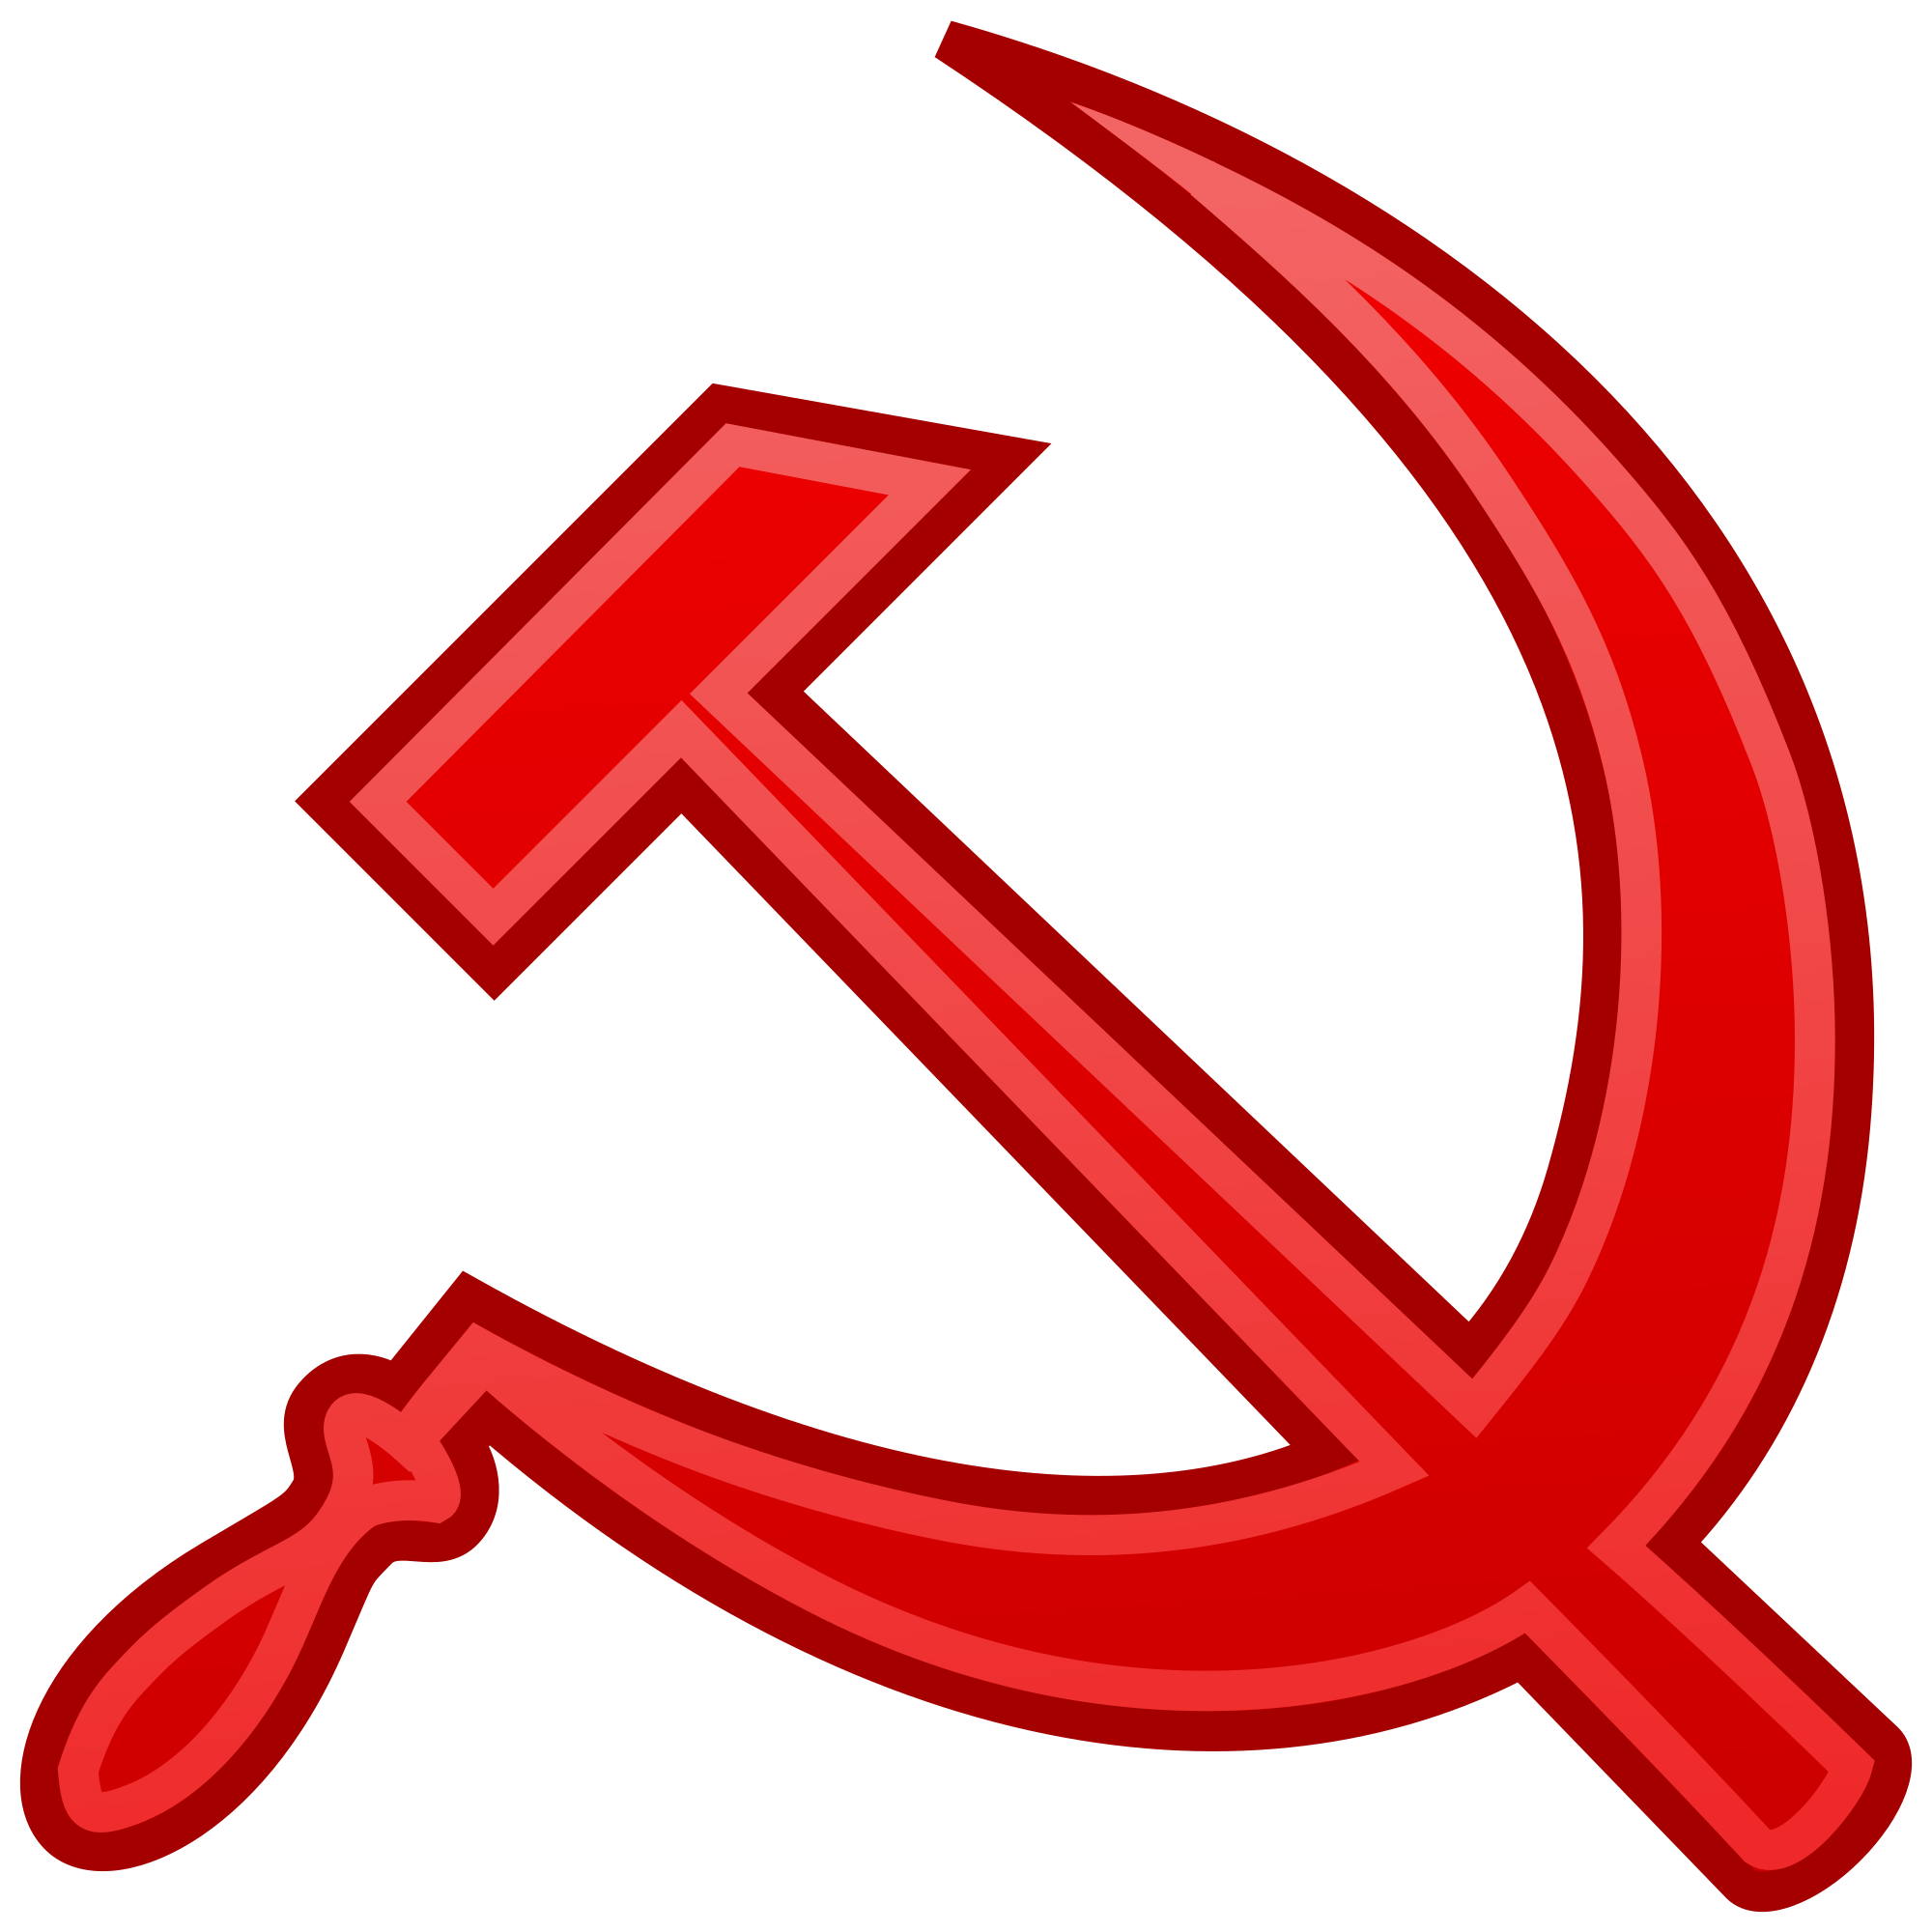 Clipart hammer supreme court. File symbol and sickle